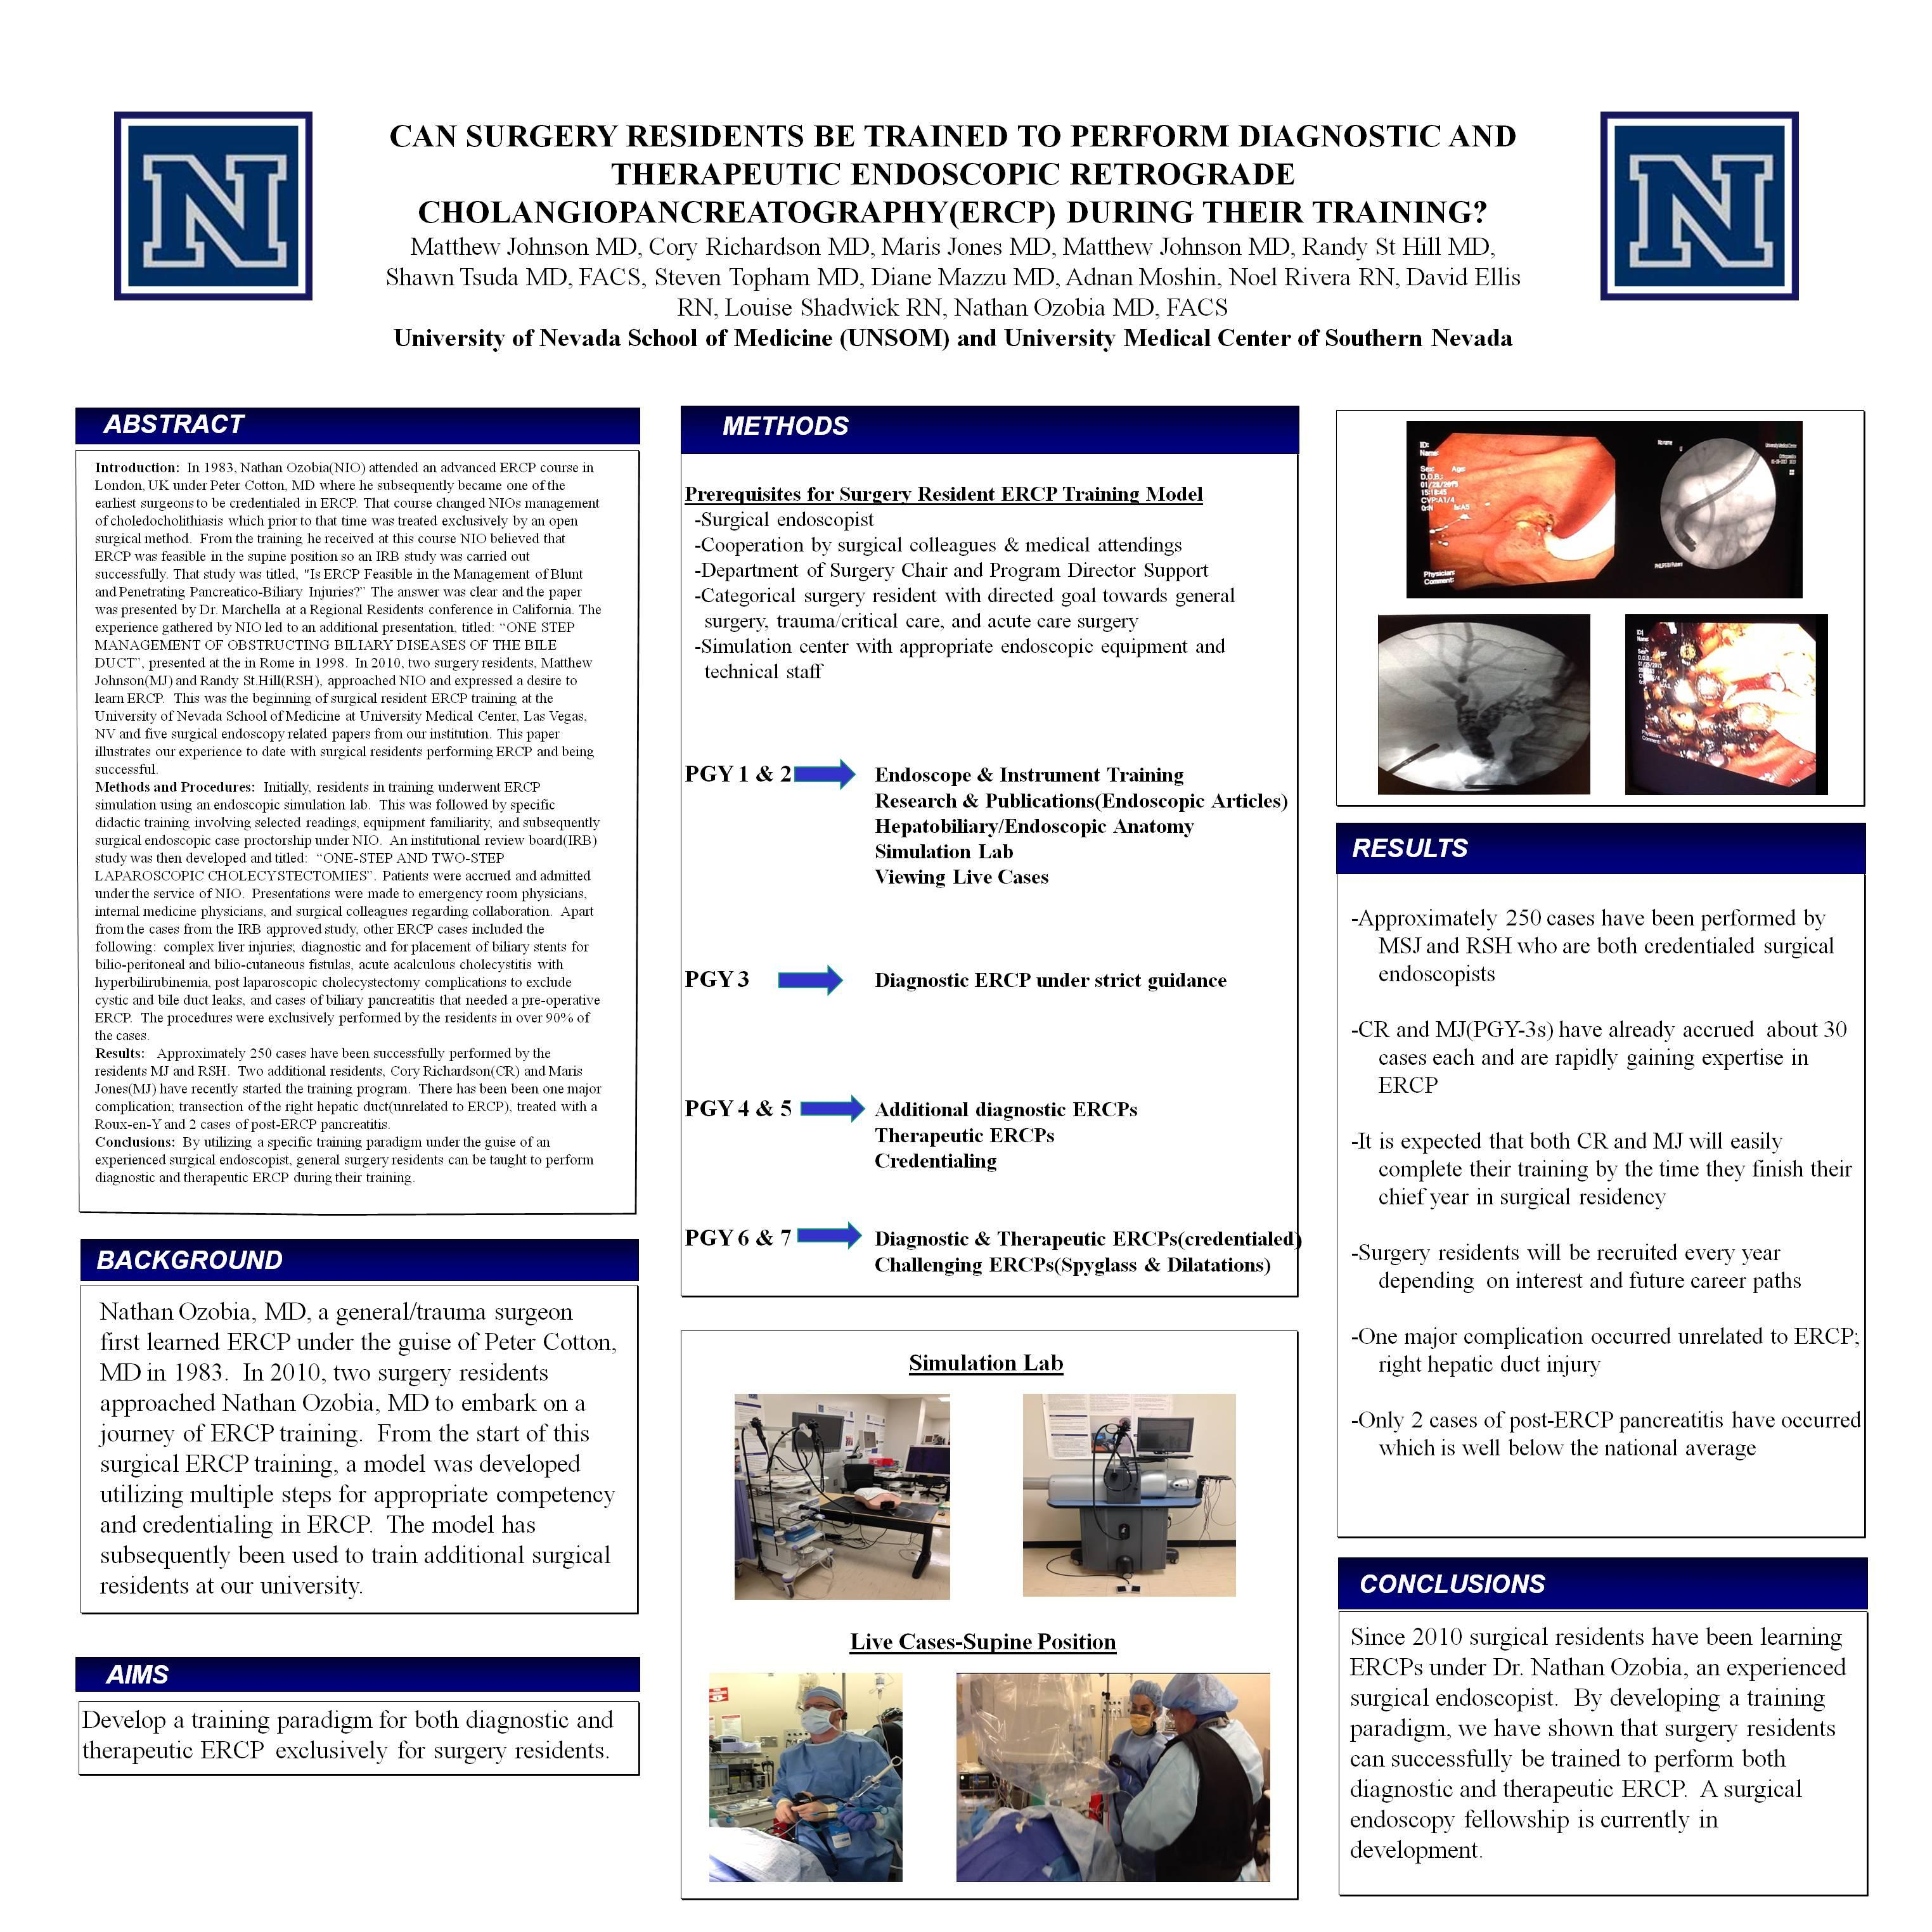 Can Surgery Residents Be Trained to Perform Diagnostic and